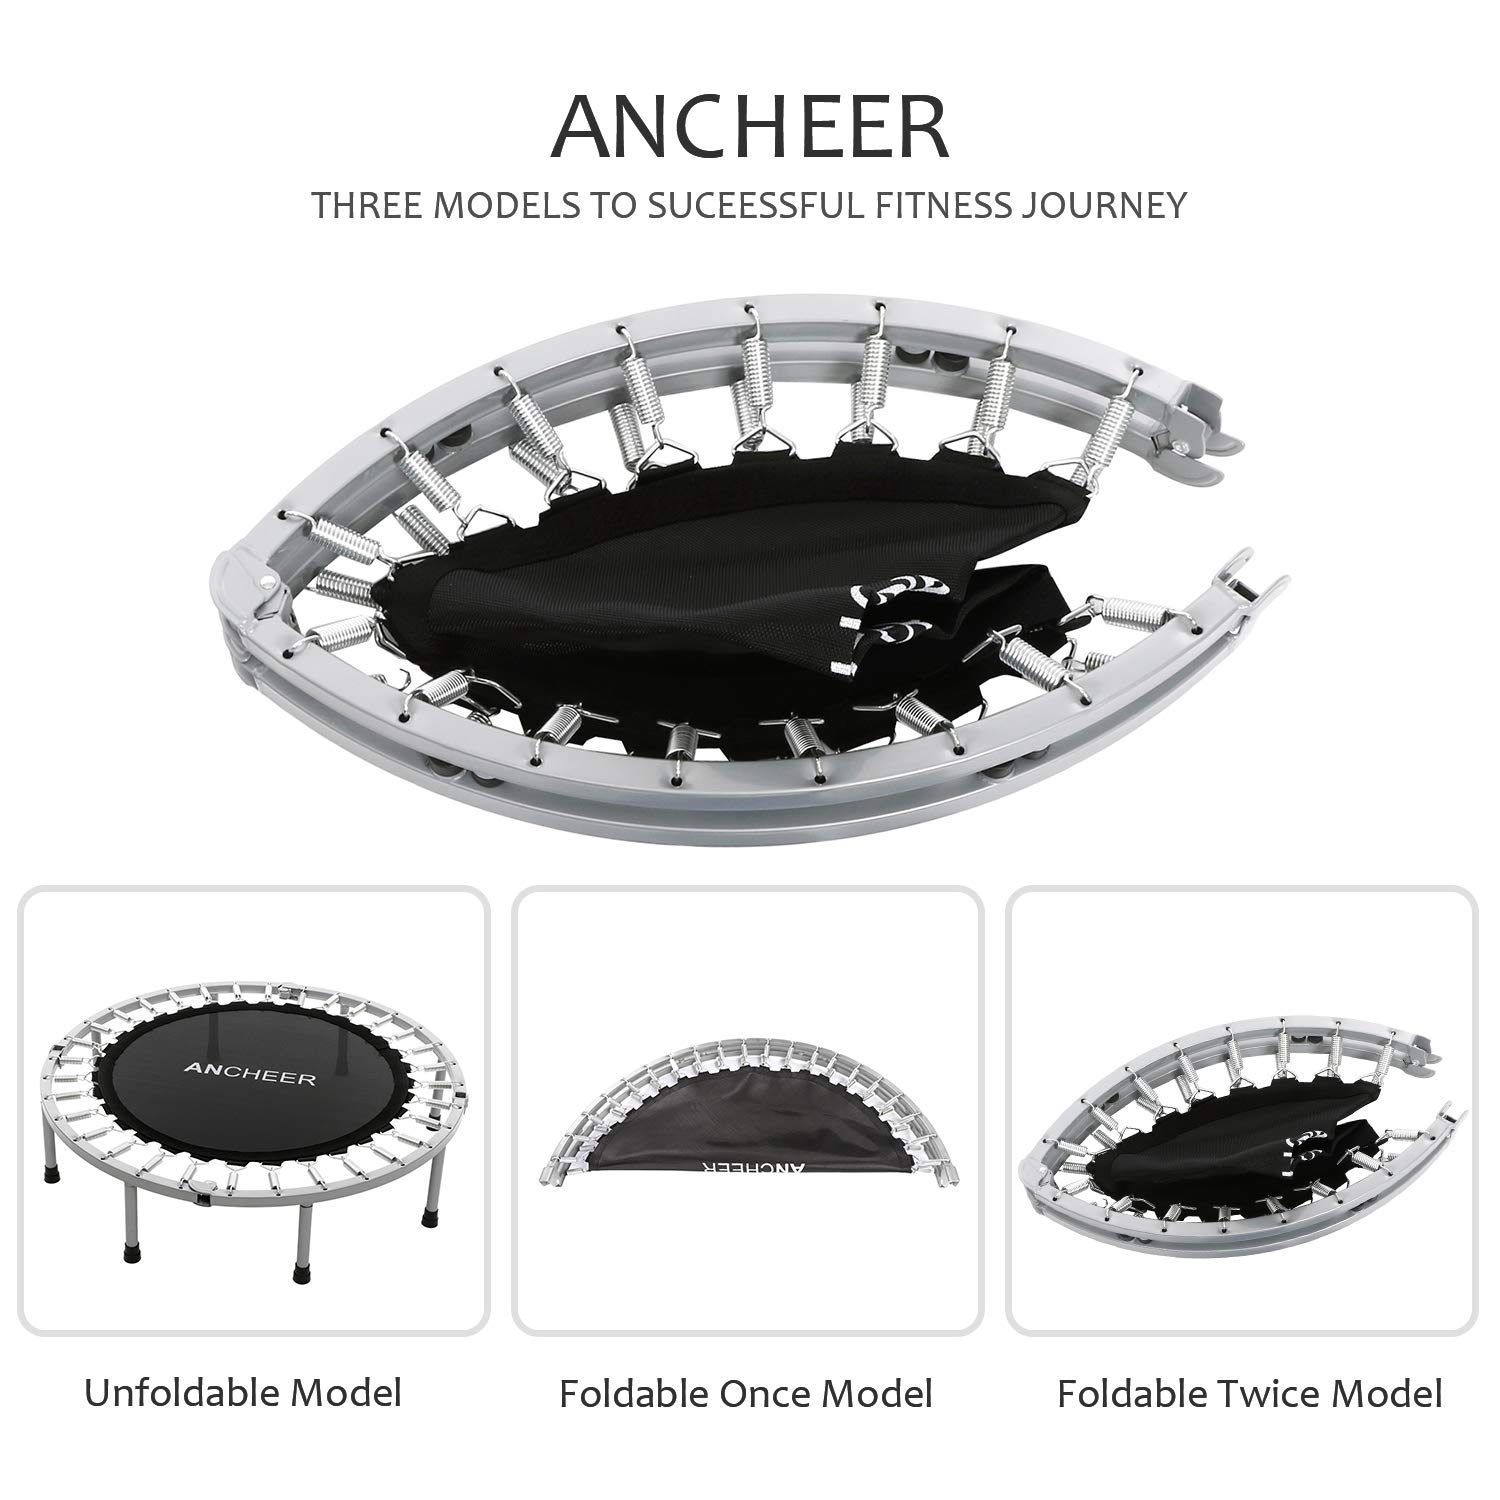 ANCHEER Max Load 220lbs Rebounder Trampoline with Safety Pad for Indoor Garden Workout Cardio Training (2 Sizes: 38 inch/40 inch, Two Modes: Folding/Not Folding) by ANCHEER (Image #3)